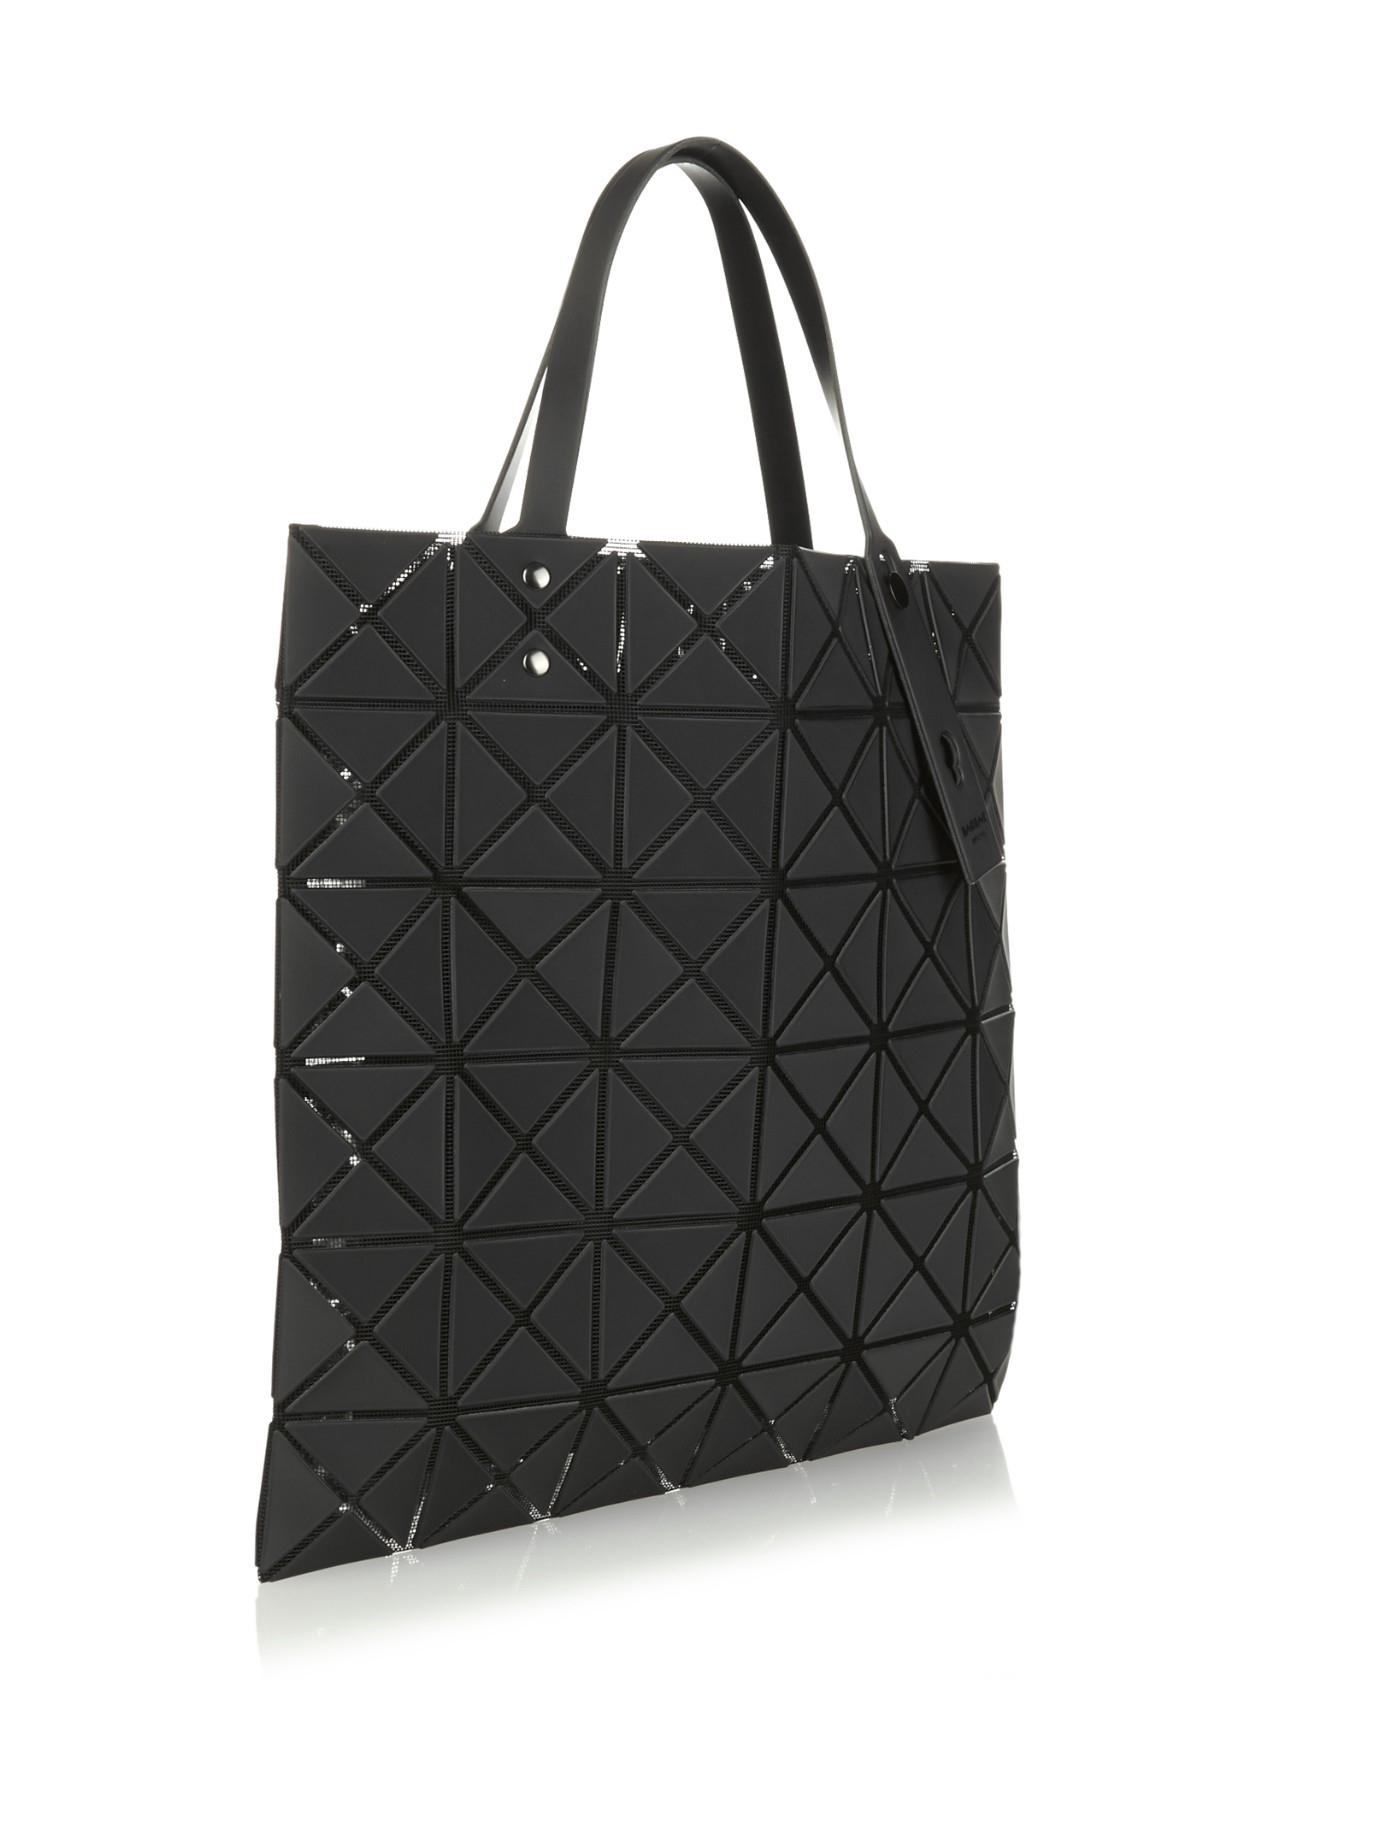 Lyst - Bao Bao Issey Miyake Lucent Basic Tote in Black a7cfc3ef57f3c